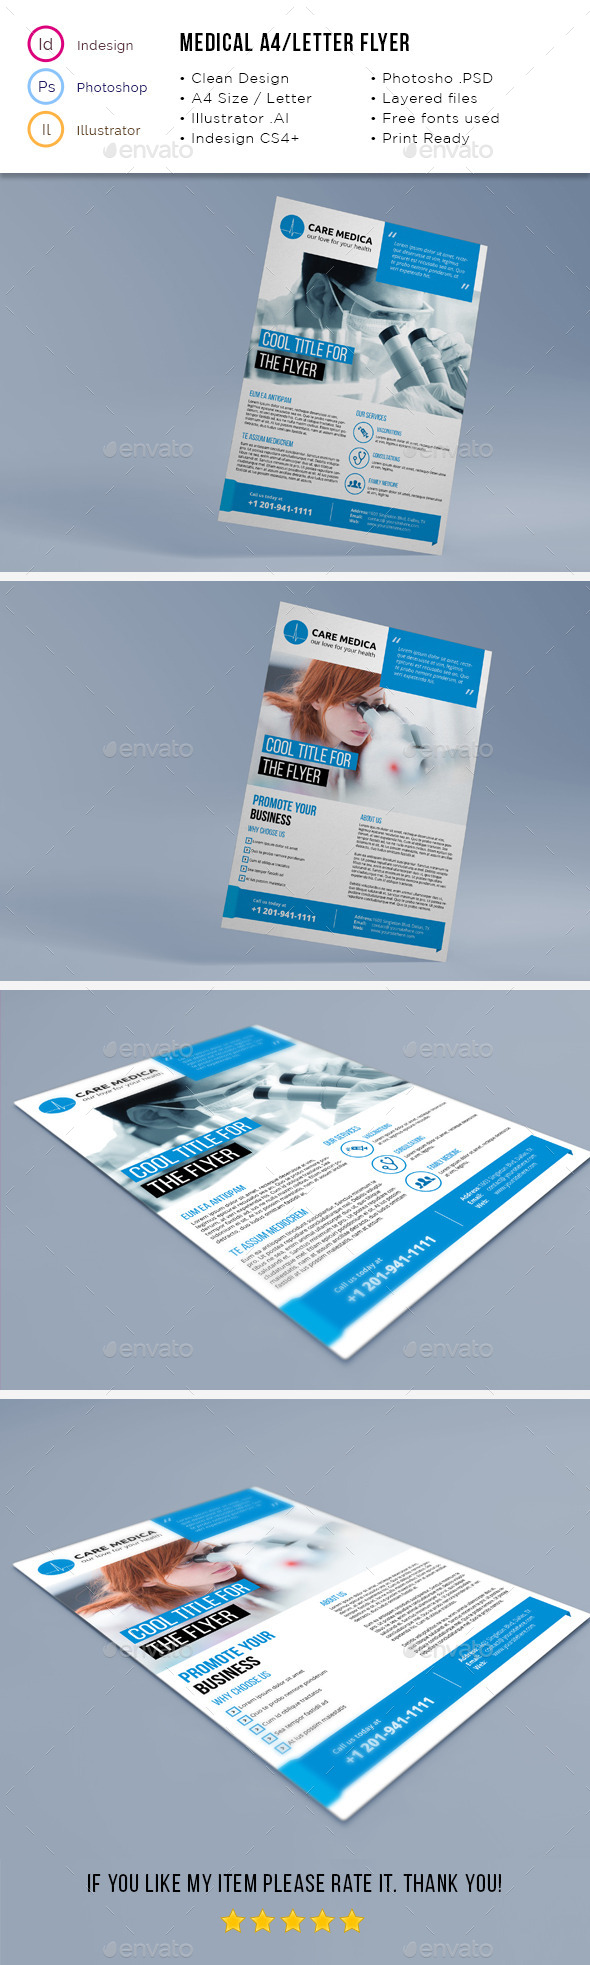 Medical A4 / Letter Flyer - Corporate Flyers